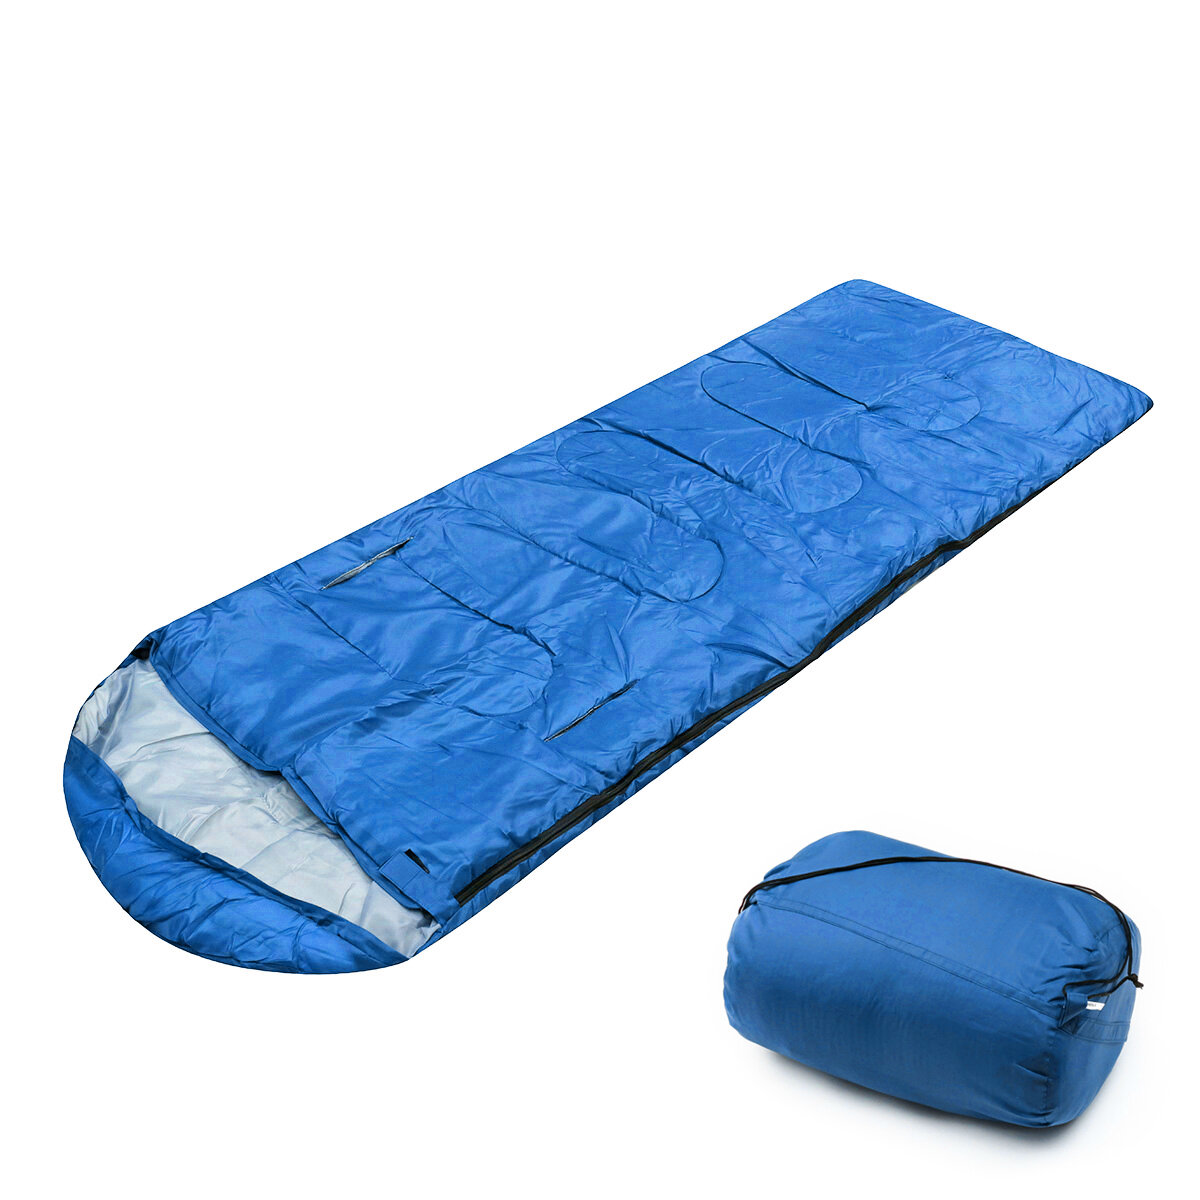 10x75CM Waterproof Camping Envelope Sleeping Bag Outdoor Hiking Backpacking Sleeping Bag with Compression Sack Case